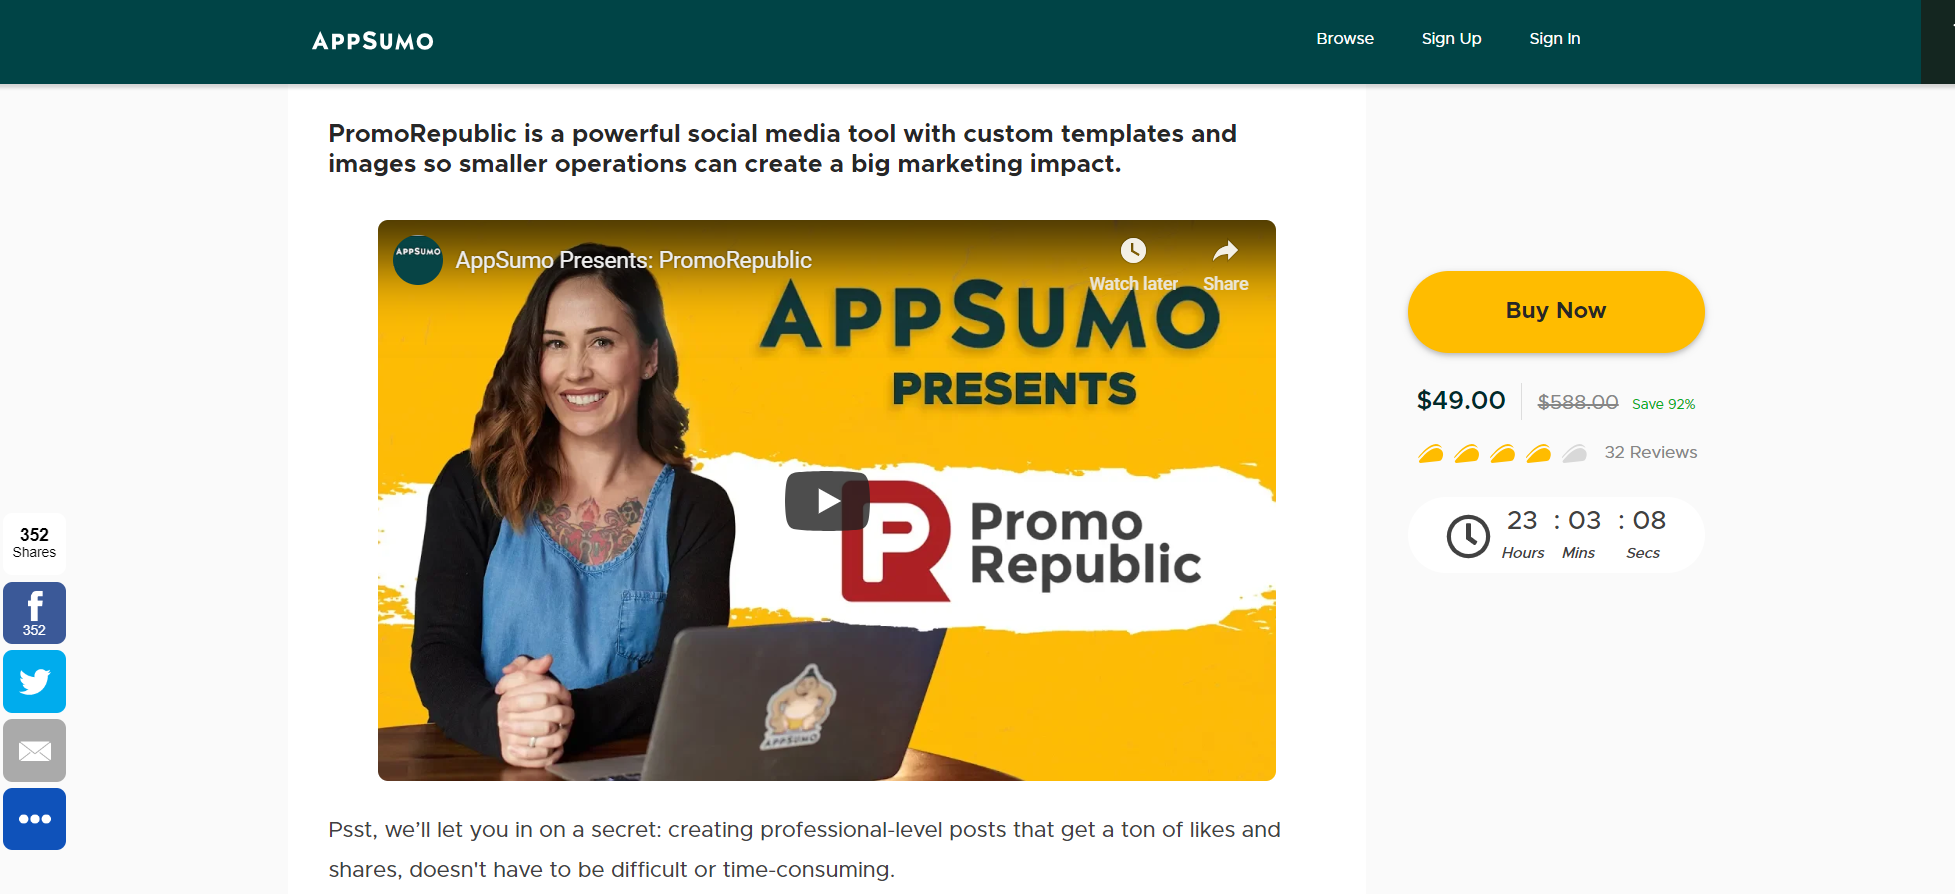 AppSumo presents PromoRepublic